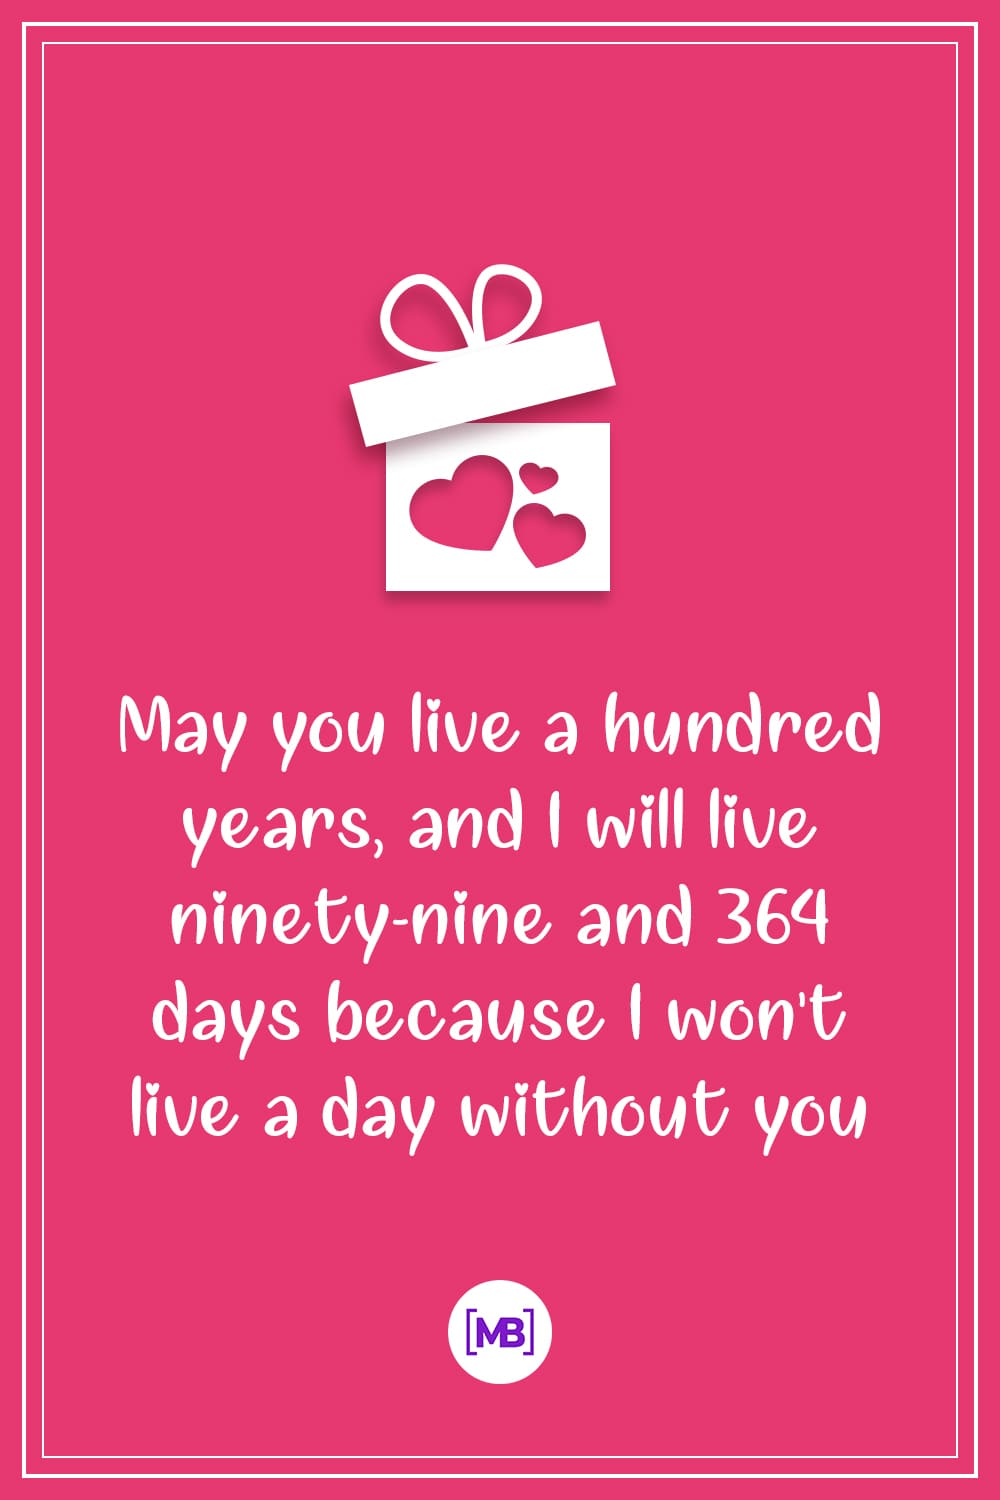 May you live a hundred years, and I will live ninety-nine and 364 days because I won't live a day without you.